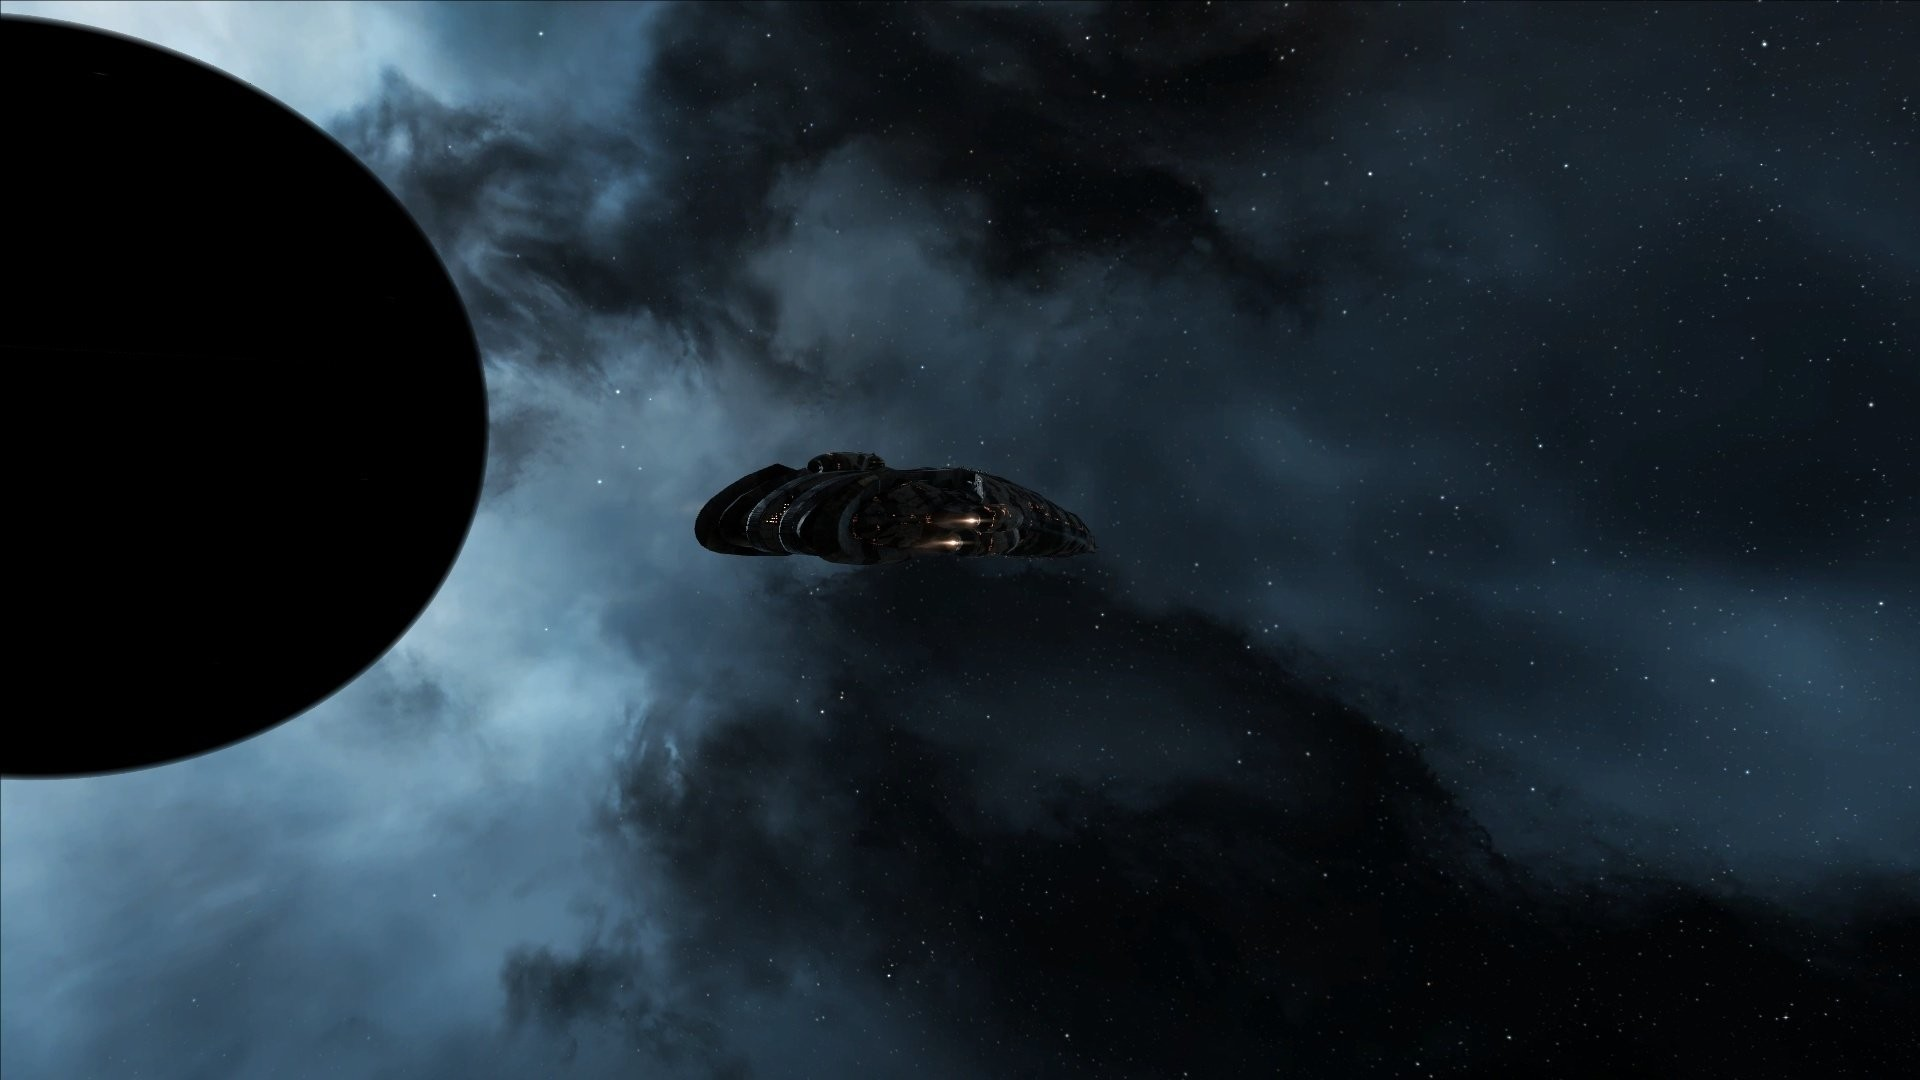 Video Game – EVE Online Spaceship Planet Sci Fi Wallpaper